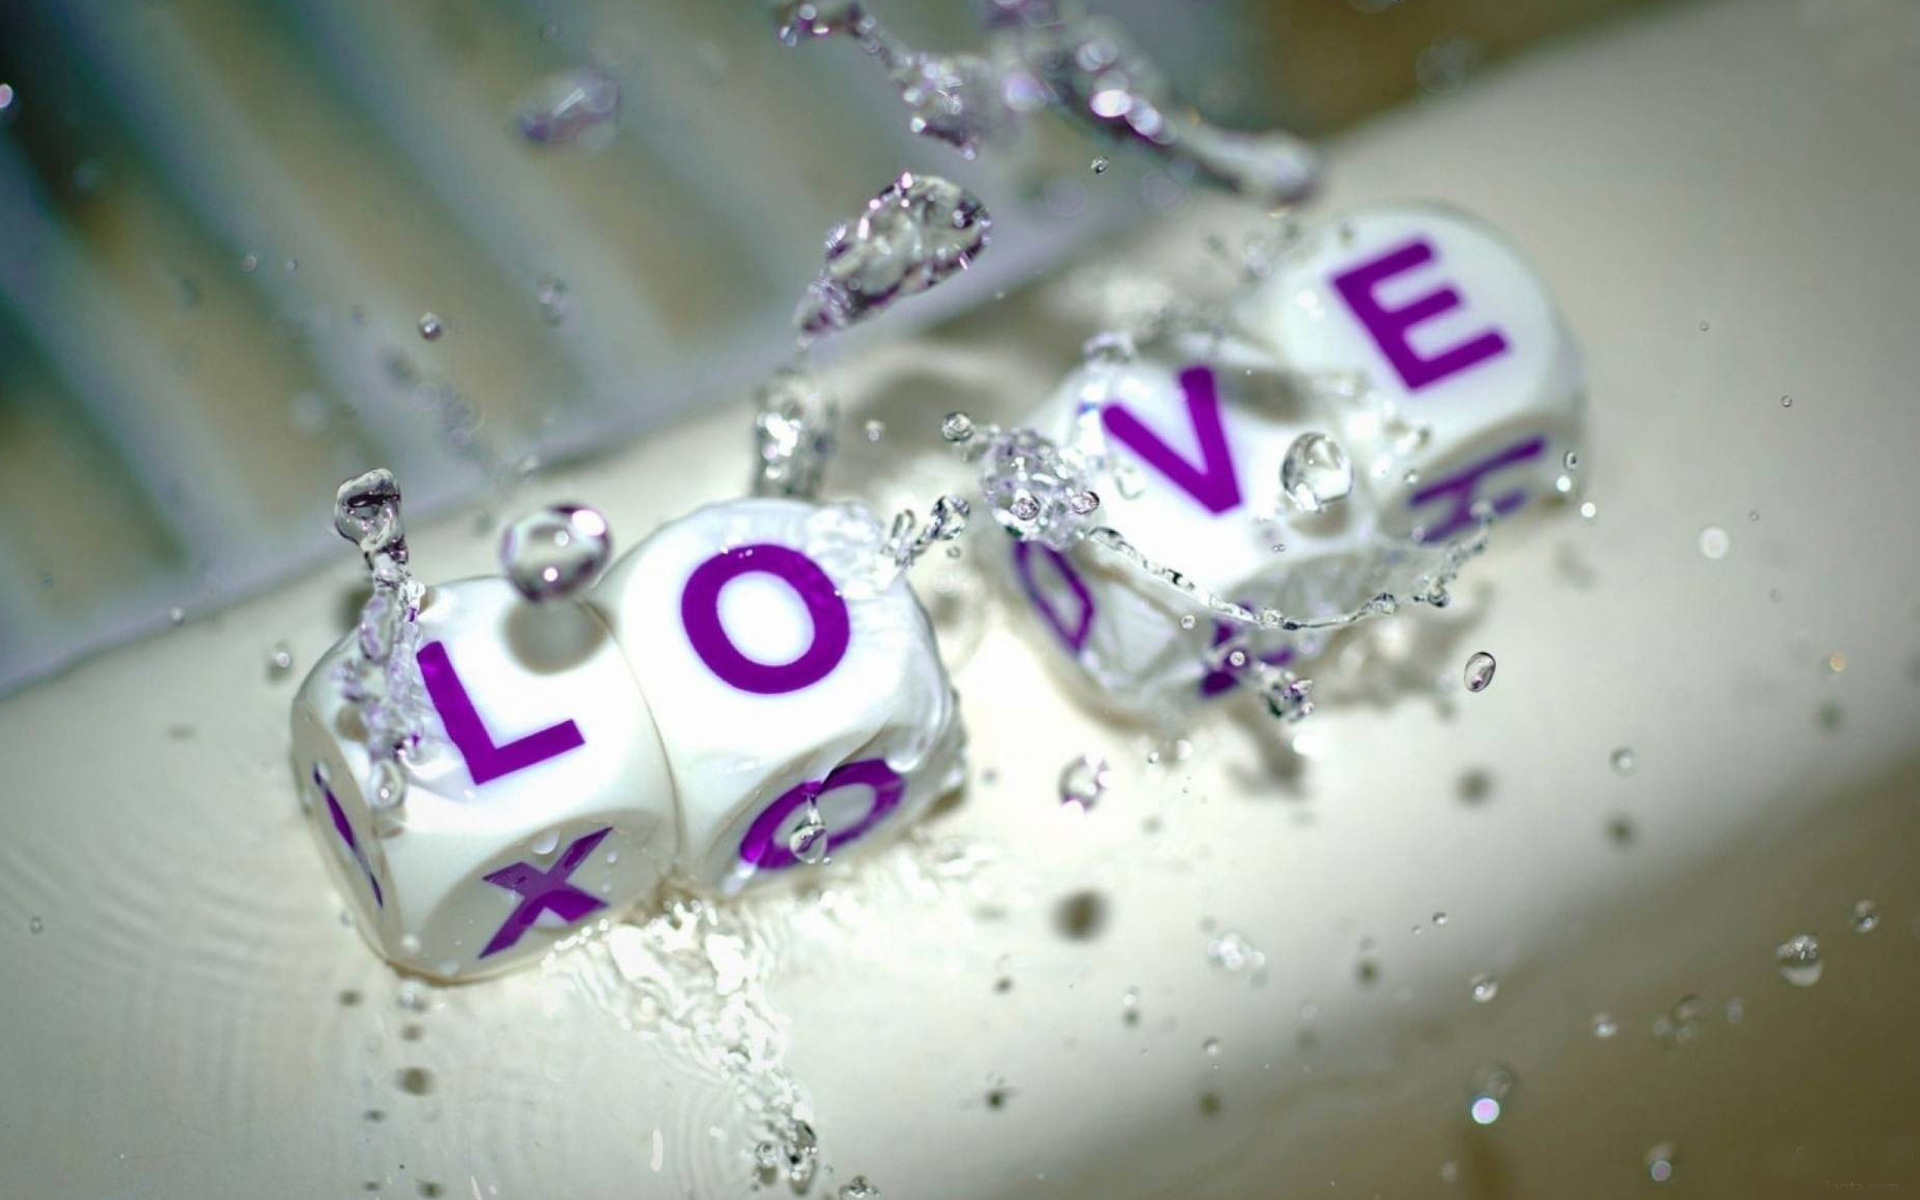 download love dice wallpaper 50419 1920x1200 px high definition